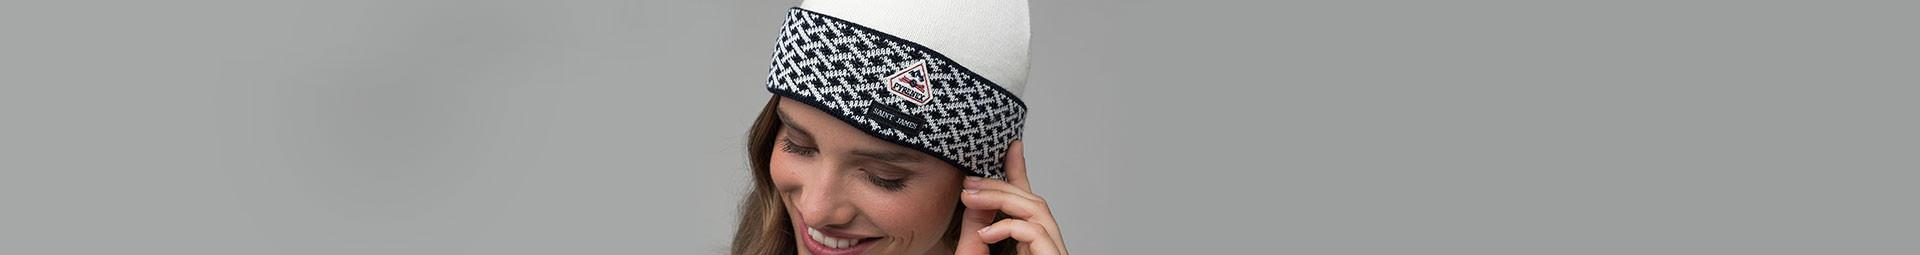 Women beanies, scarf and other winter accessories | Pyrenex